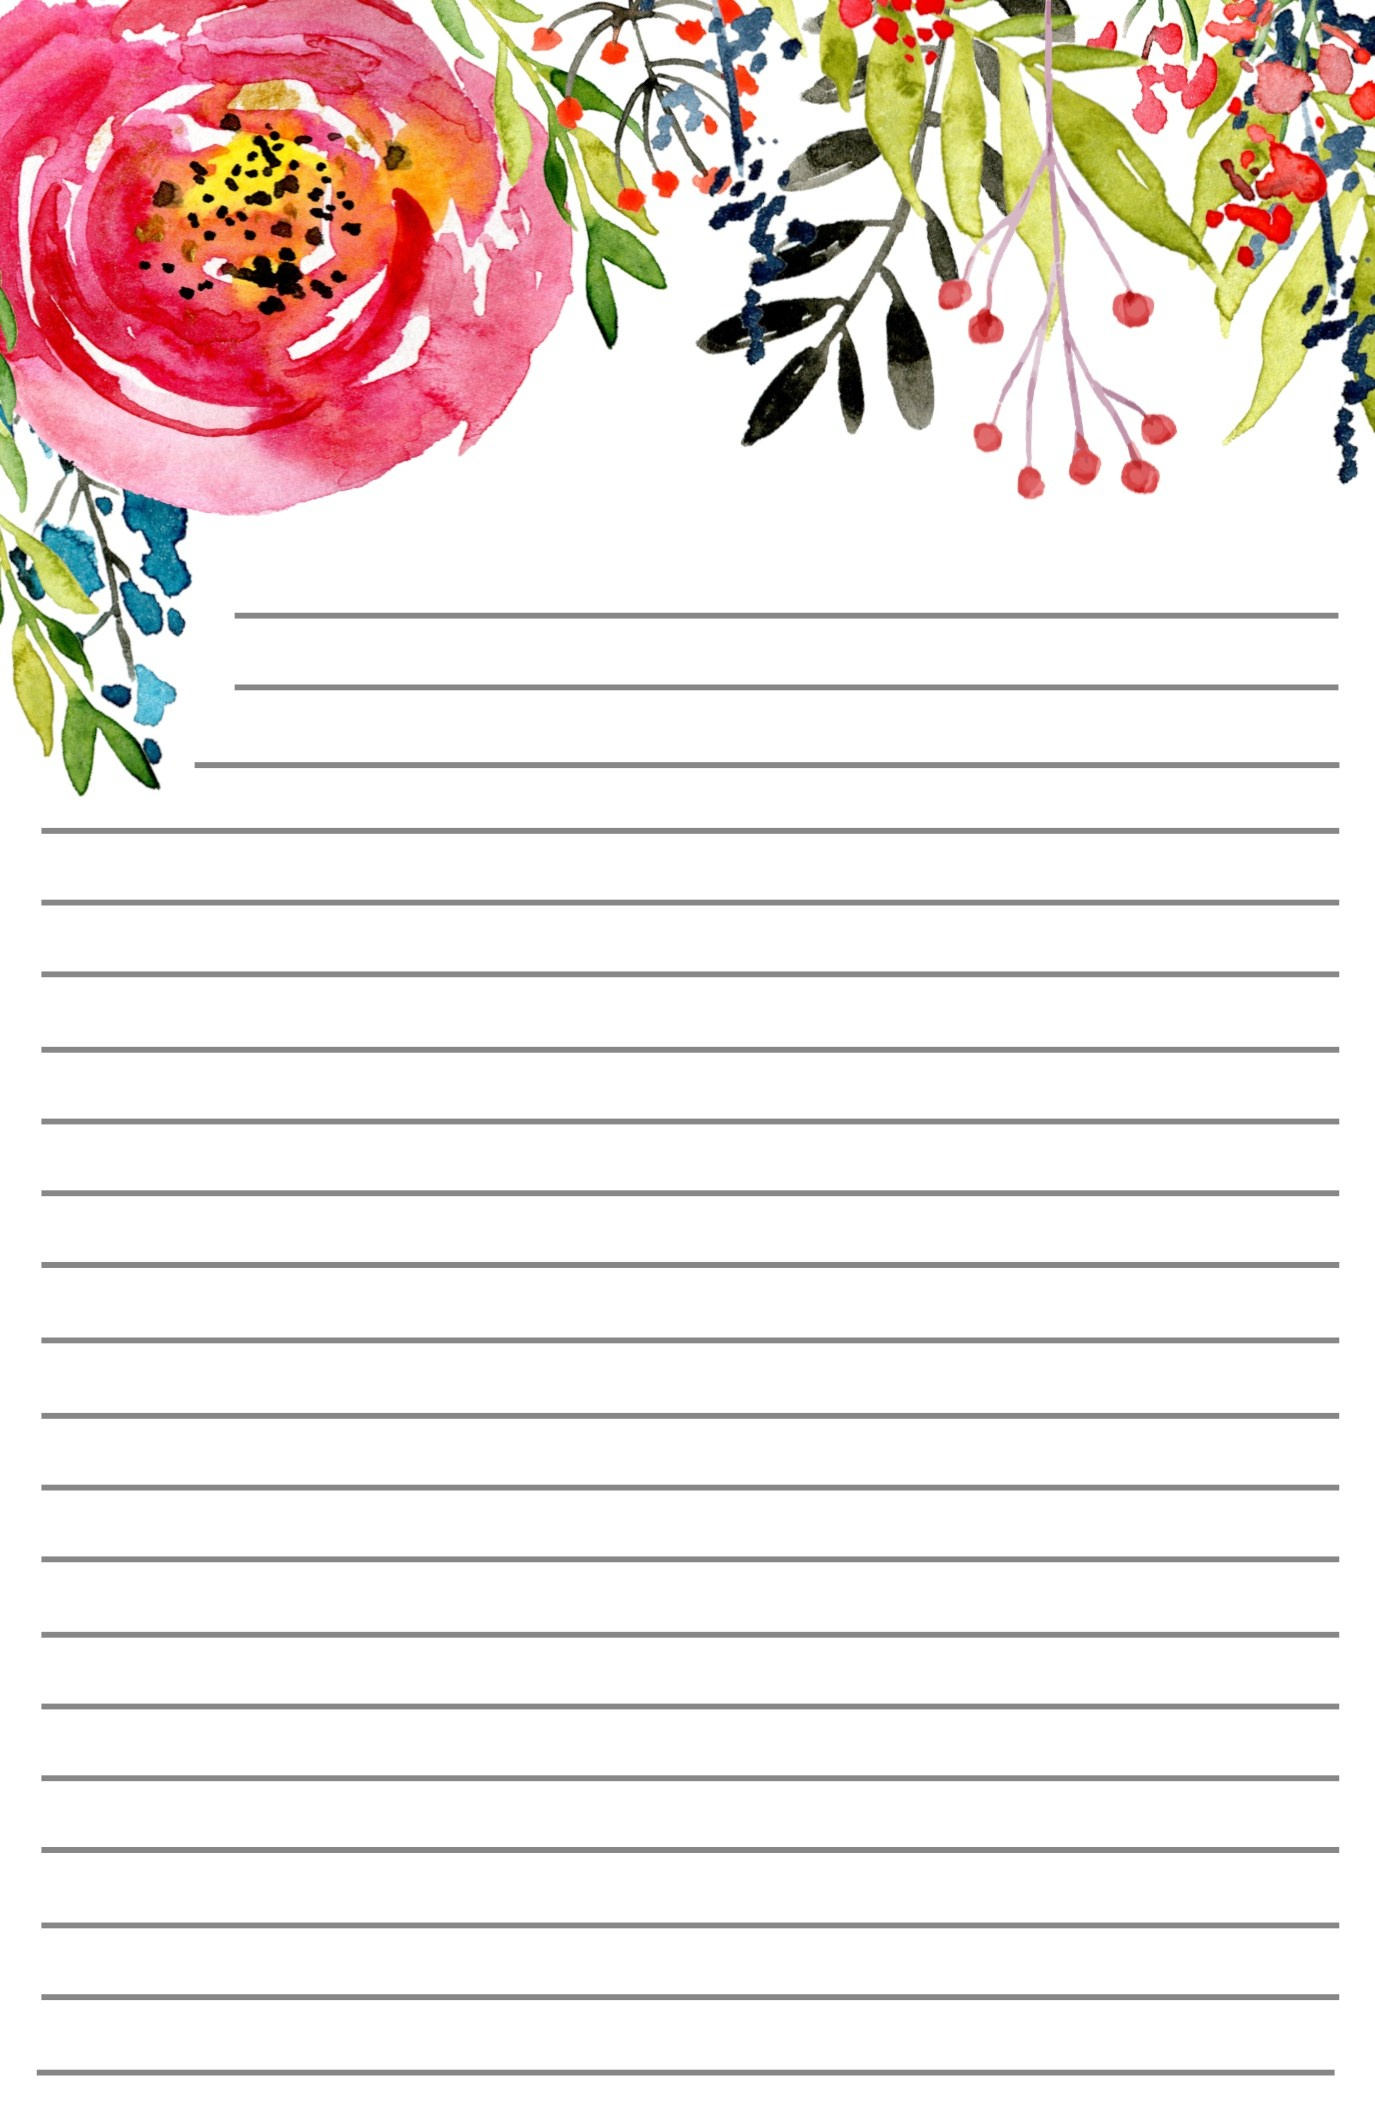 Free Printable Floral Stationery - Paper Trail Design - Free Printable Stationery Paper